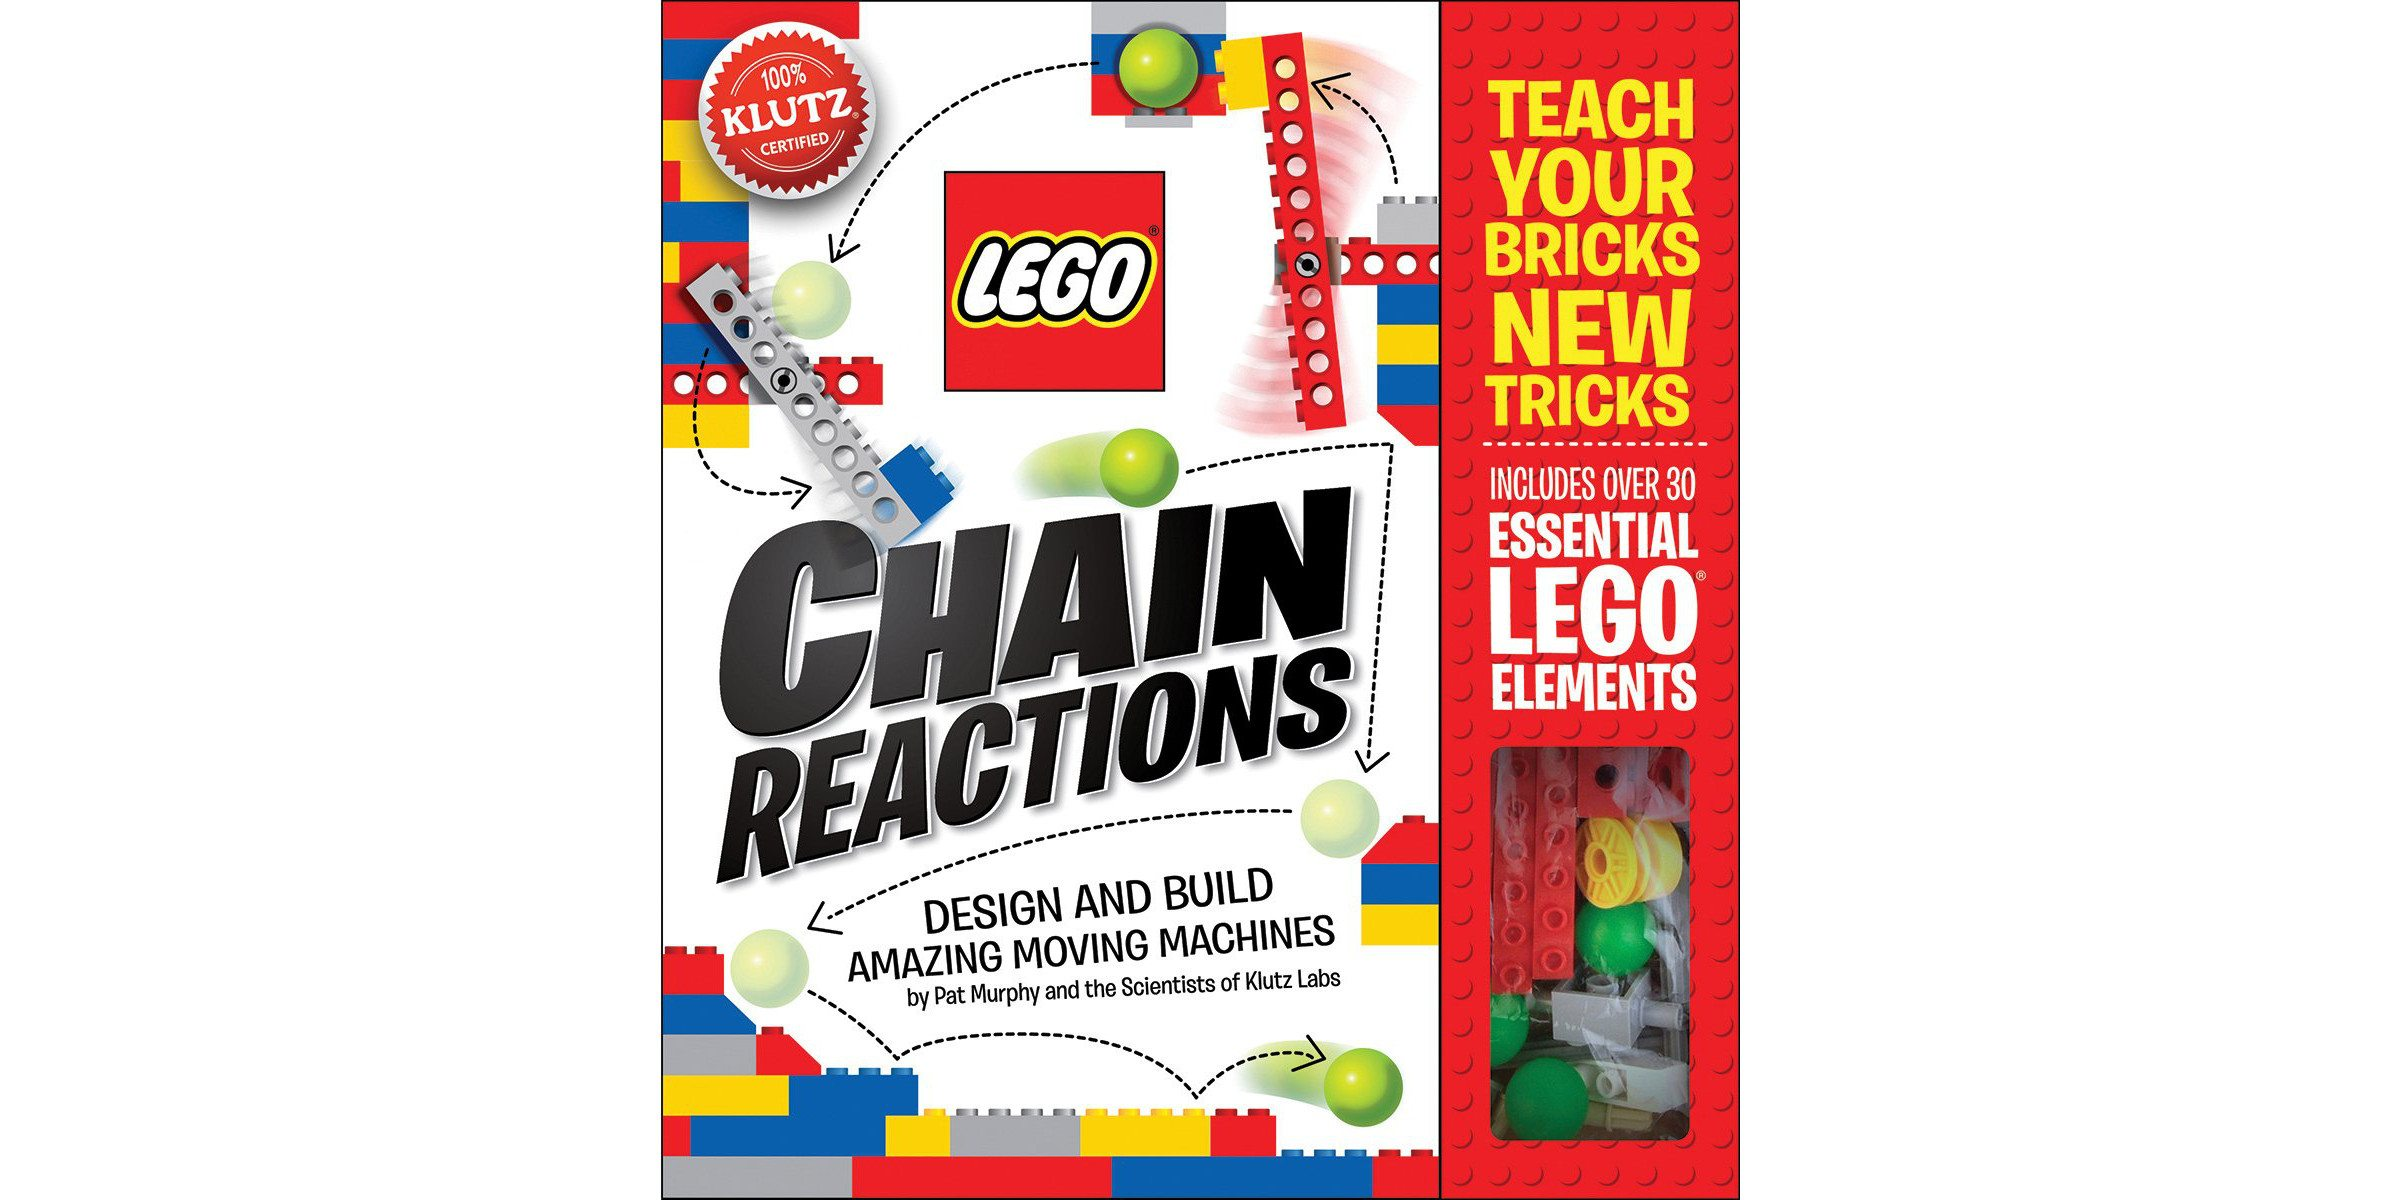 Play With Science in 'LEGO Chain Reactions'